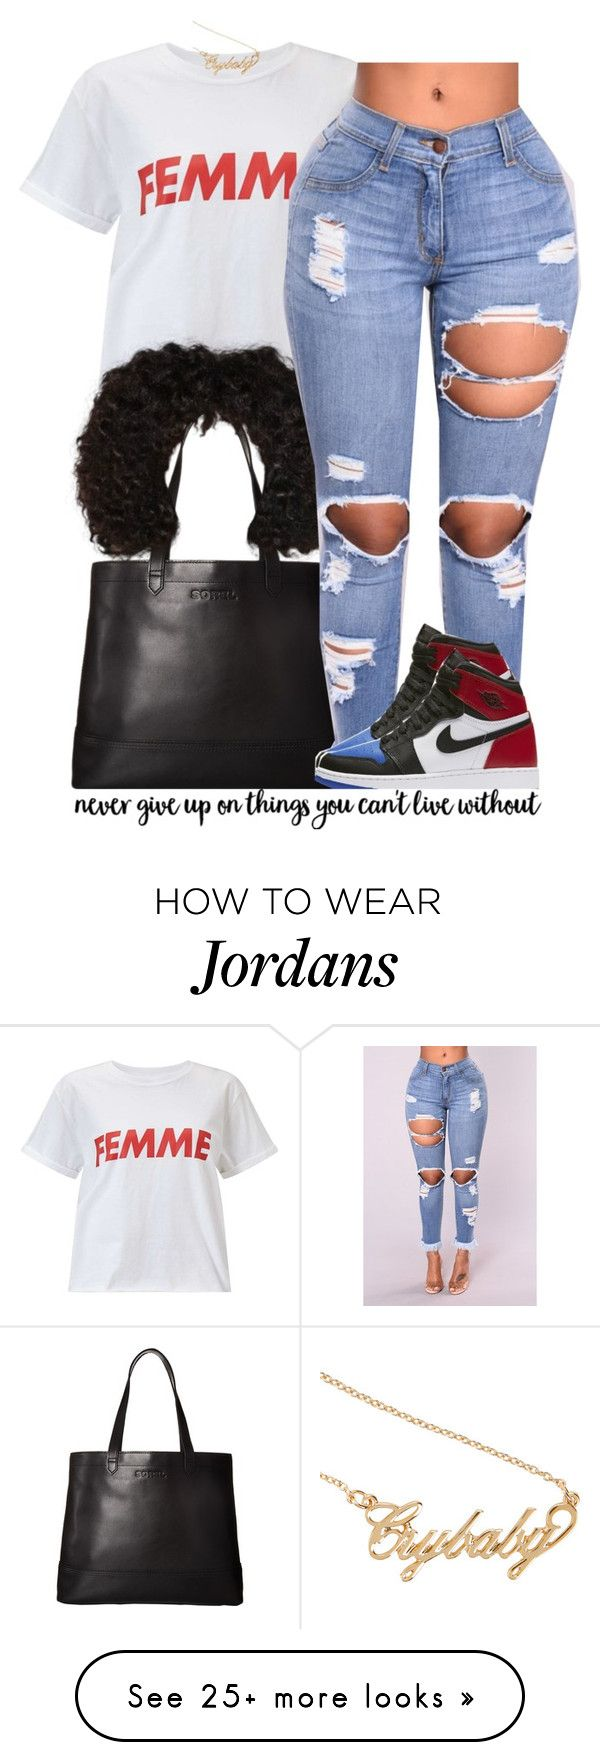 Femme Slogan. 7/01 by trinityannetrinity on Polyvore featuring Miss Selfridge, SOREL, NIKE and Hot Topic